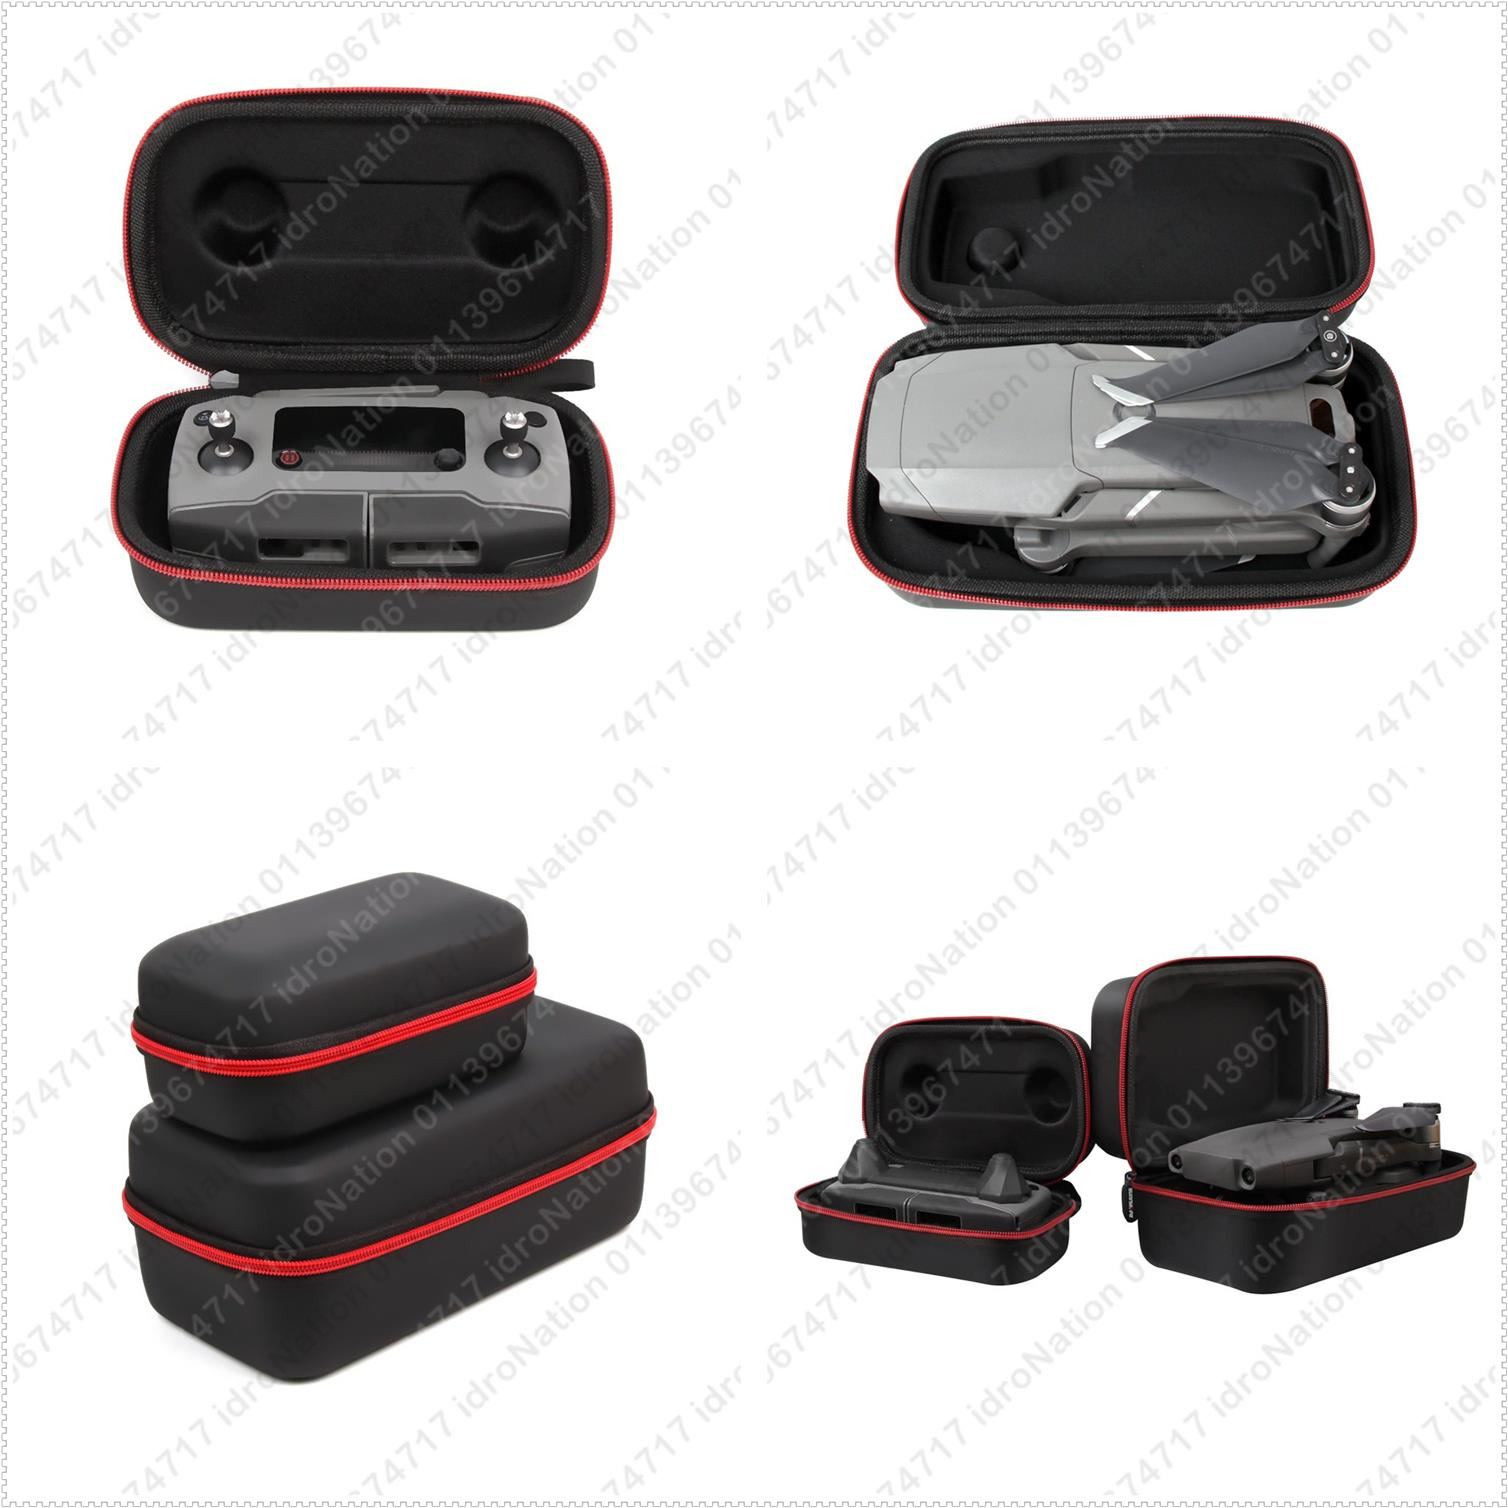 DJI Mavic 2 Pro Zoom Case Portable Carrying Box Storage Bag Remote